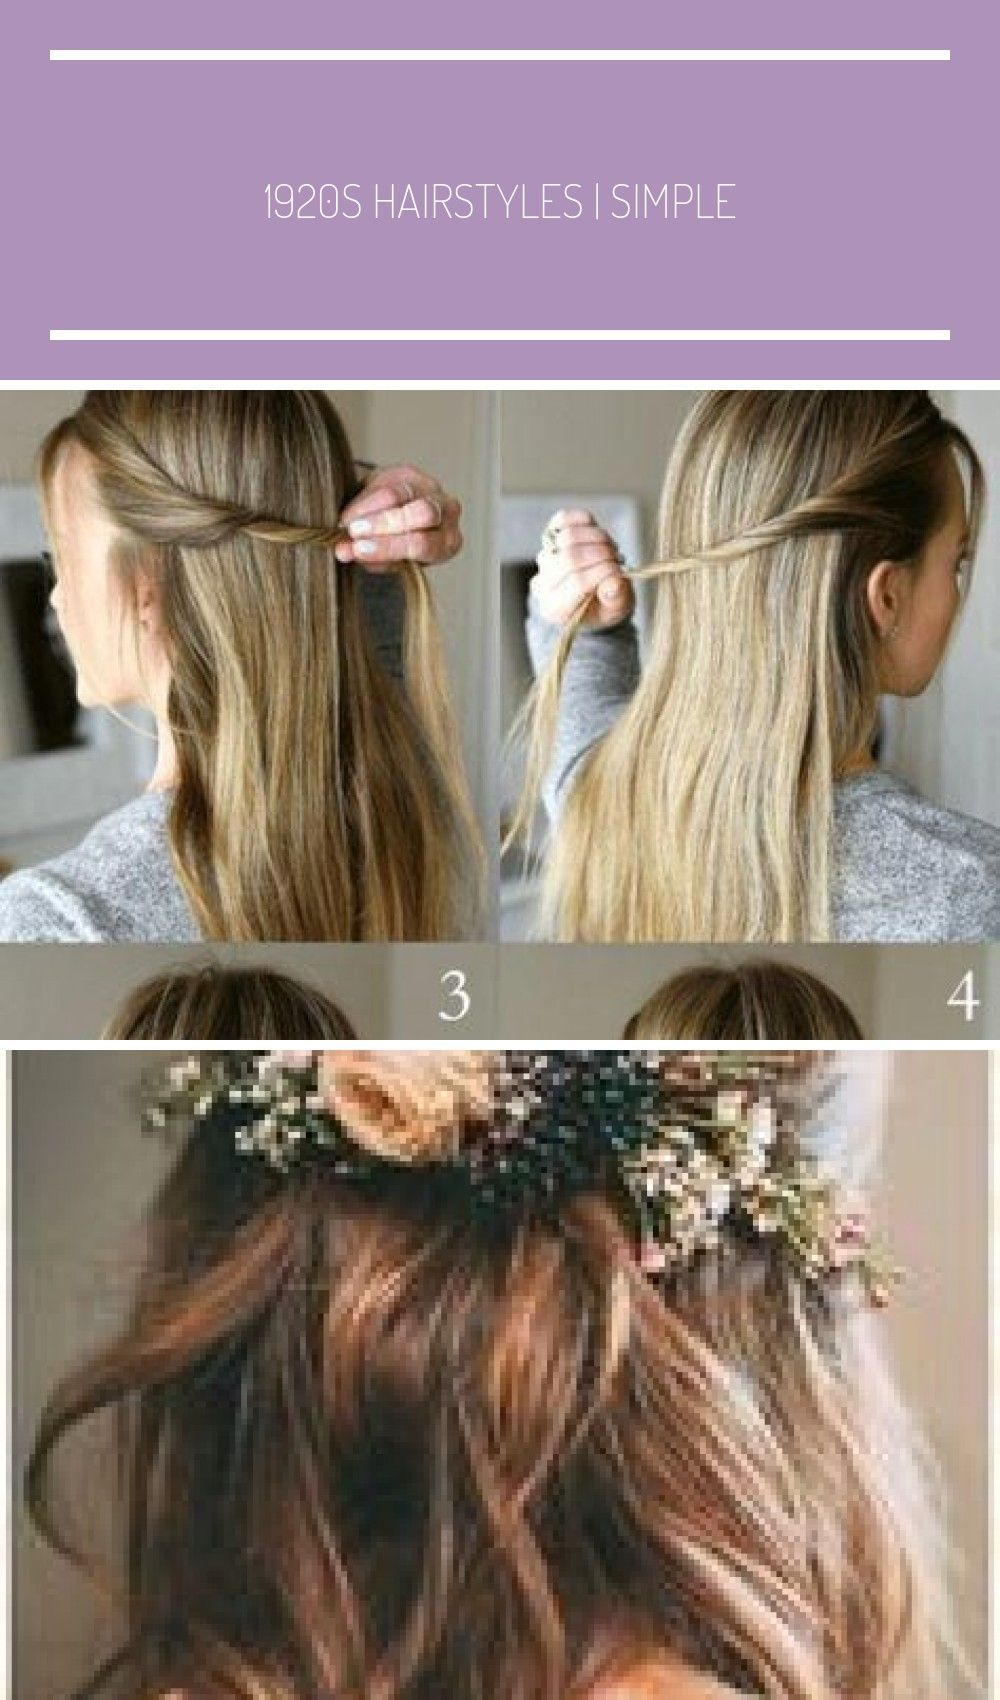 1920s Hairstyles Simple Up Hairstyles For Long Hair Up Dos For I Dos 20190319 1920slong Medium Curly Hair Styles Easy Hairstyles Pretty Braided Hairstyles